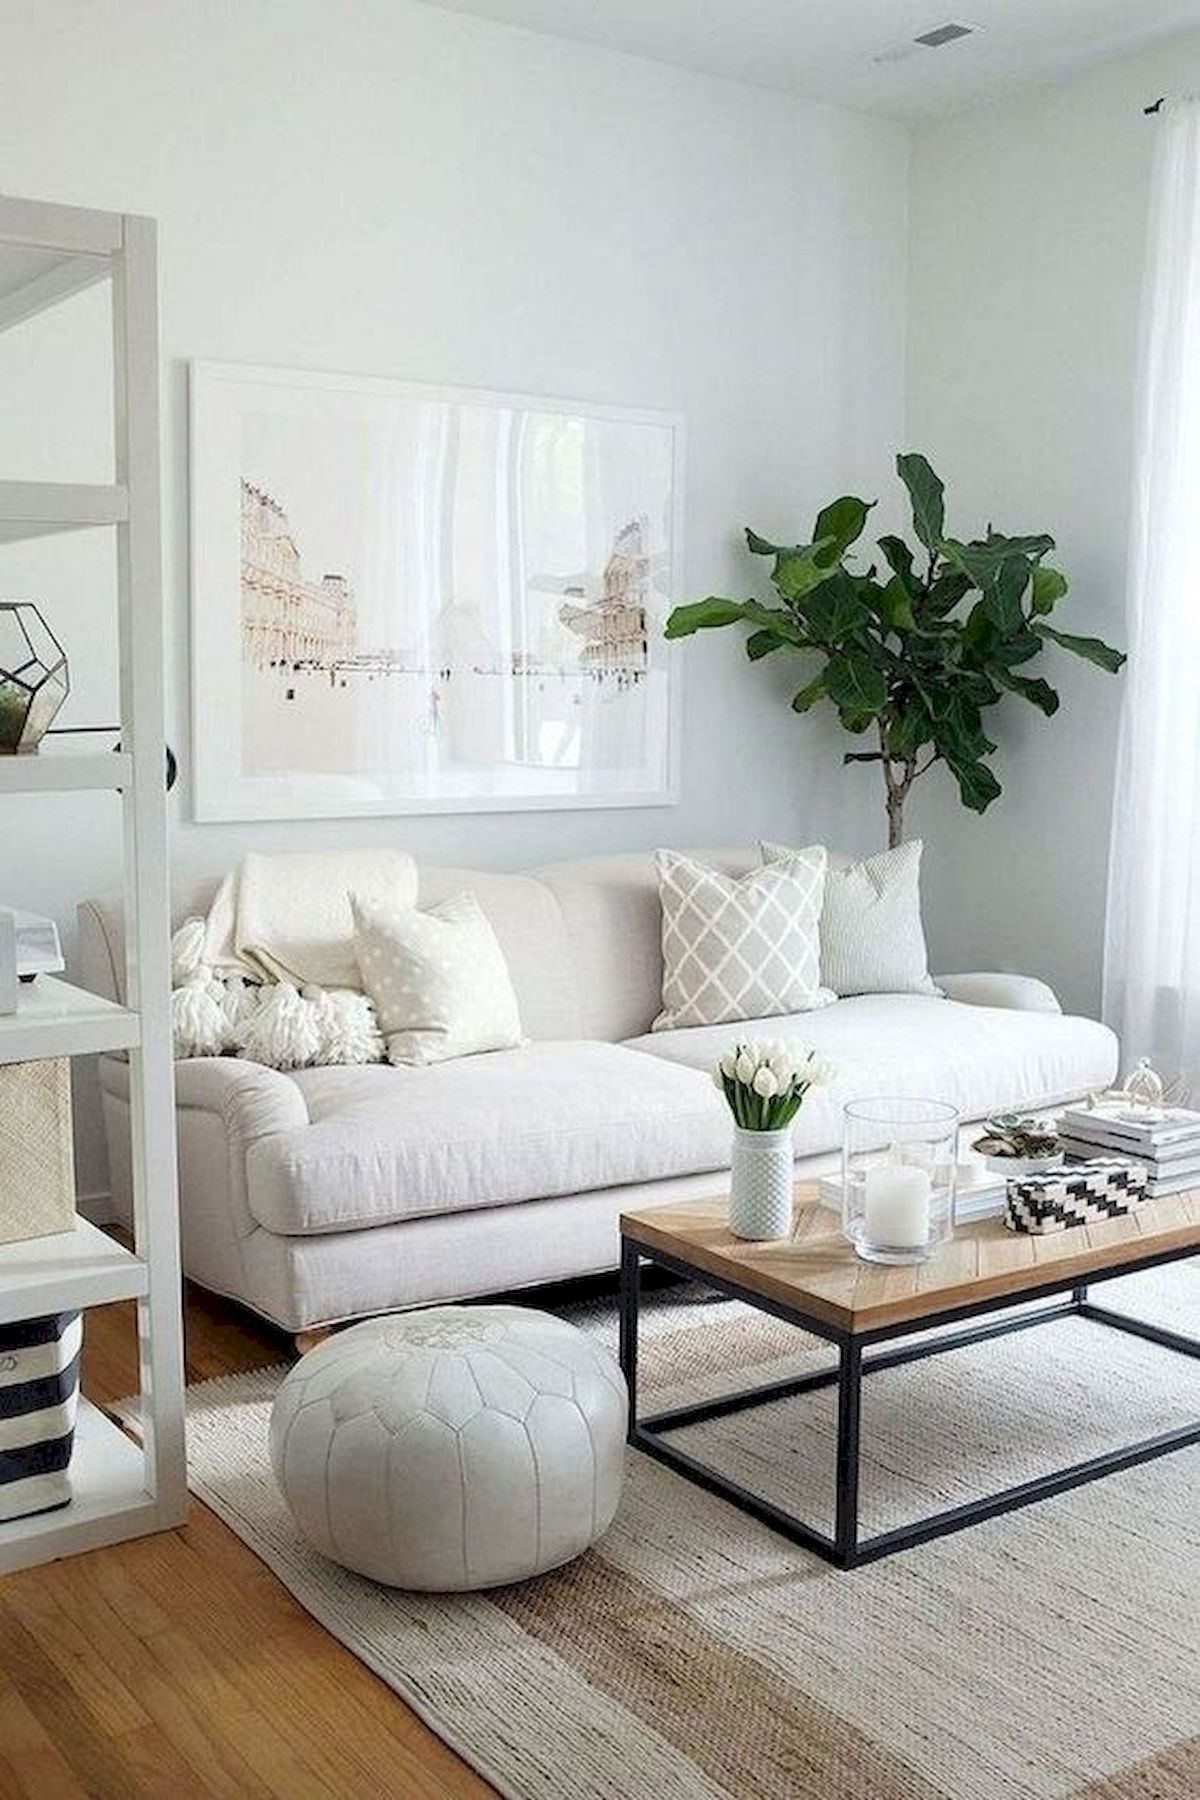 45 Brilliant DIY Living Room Design and Decor Ideas for Small Apartment (24)